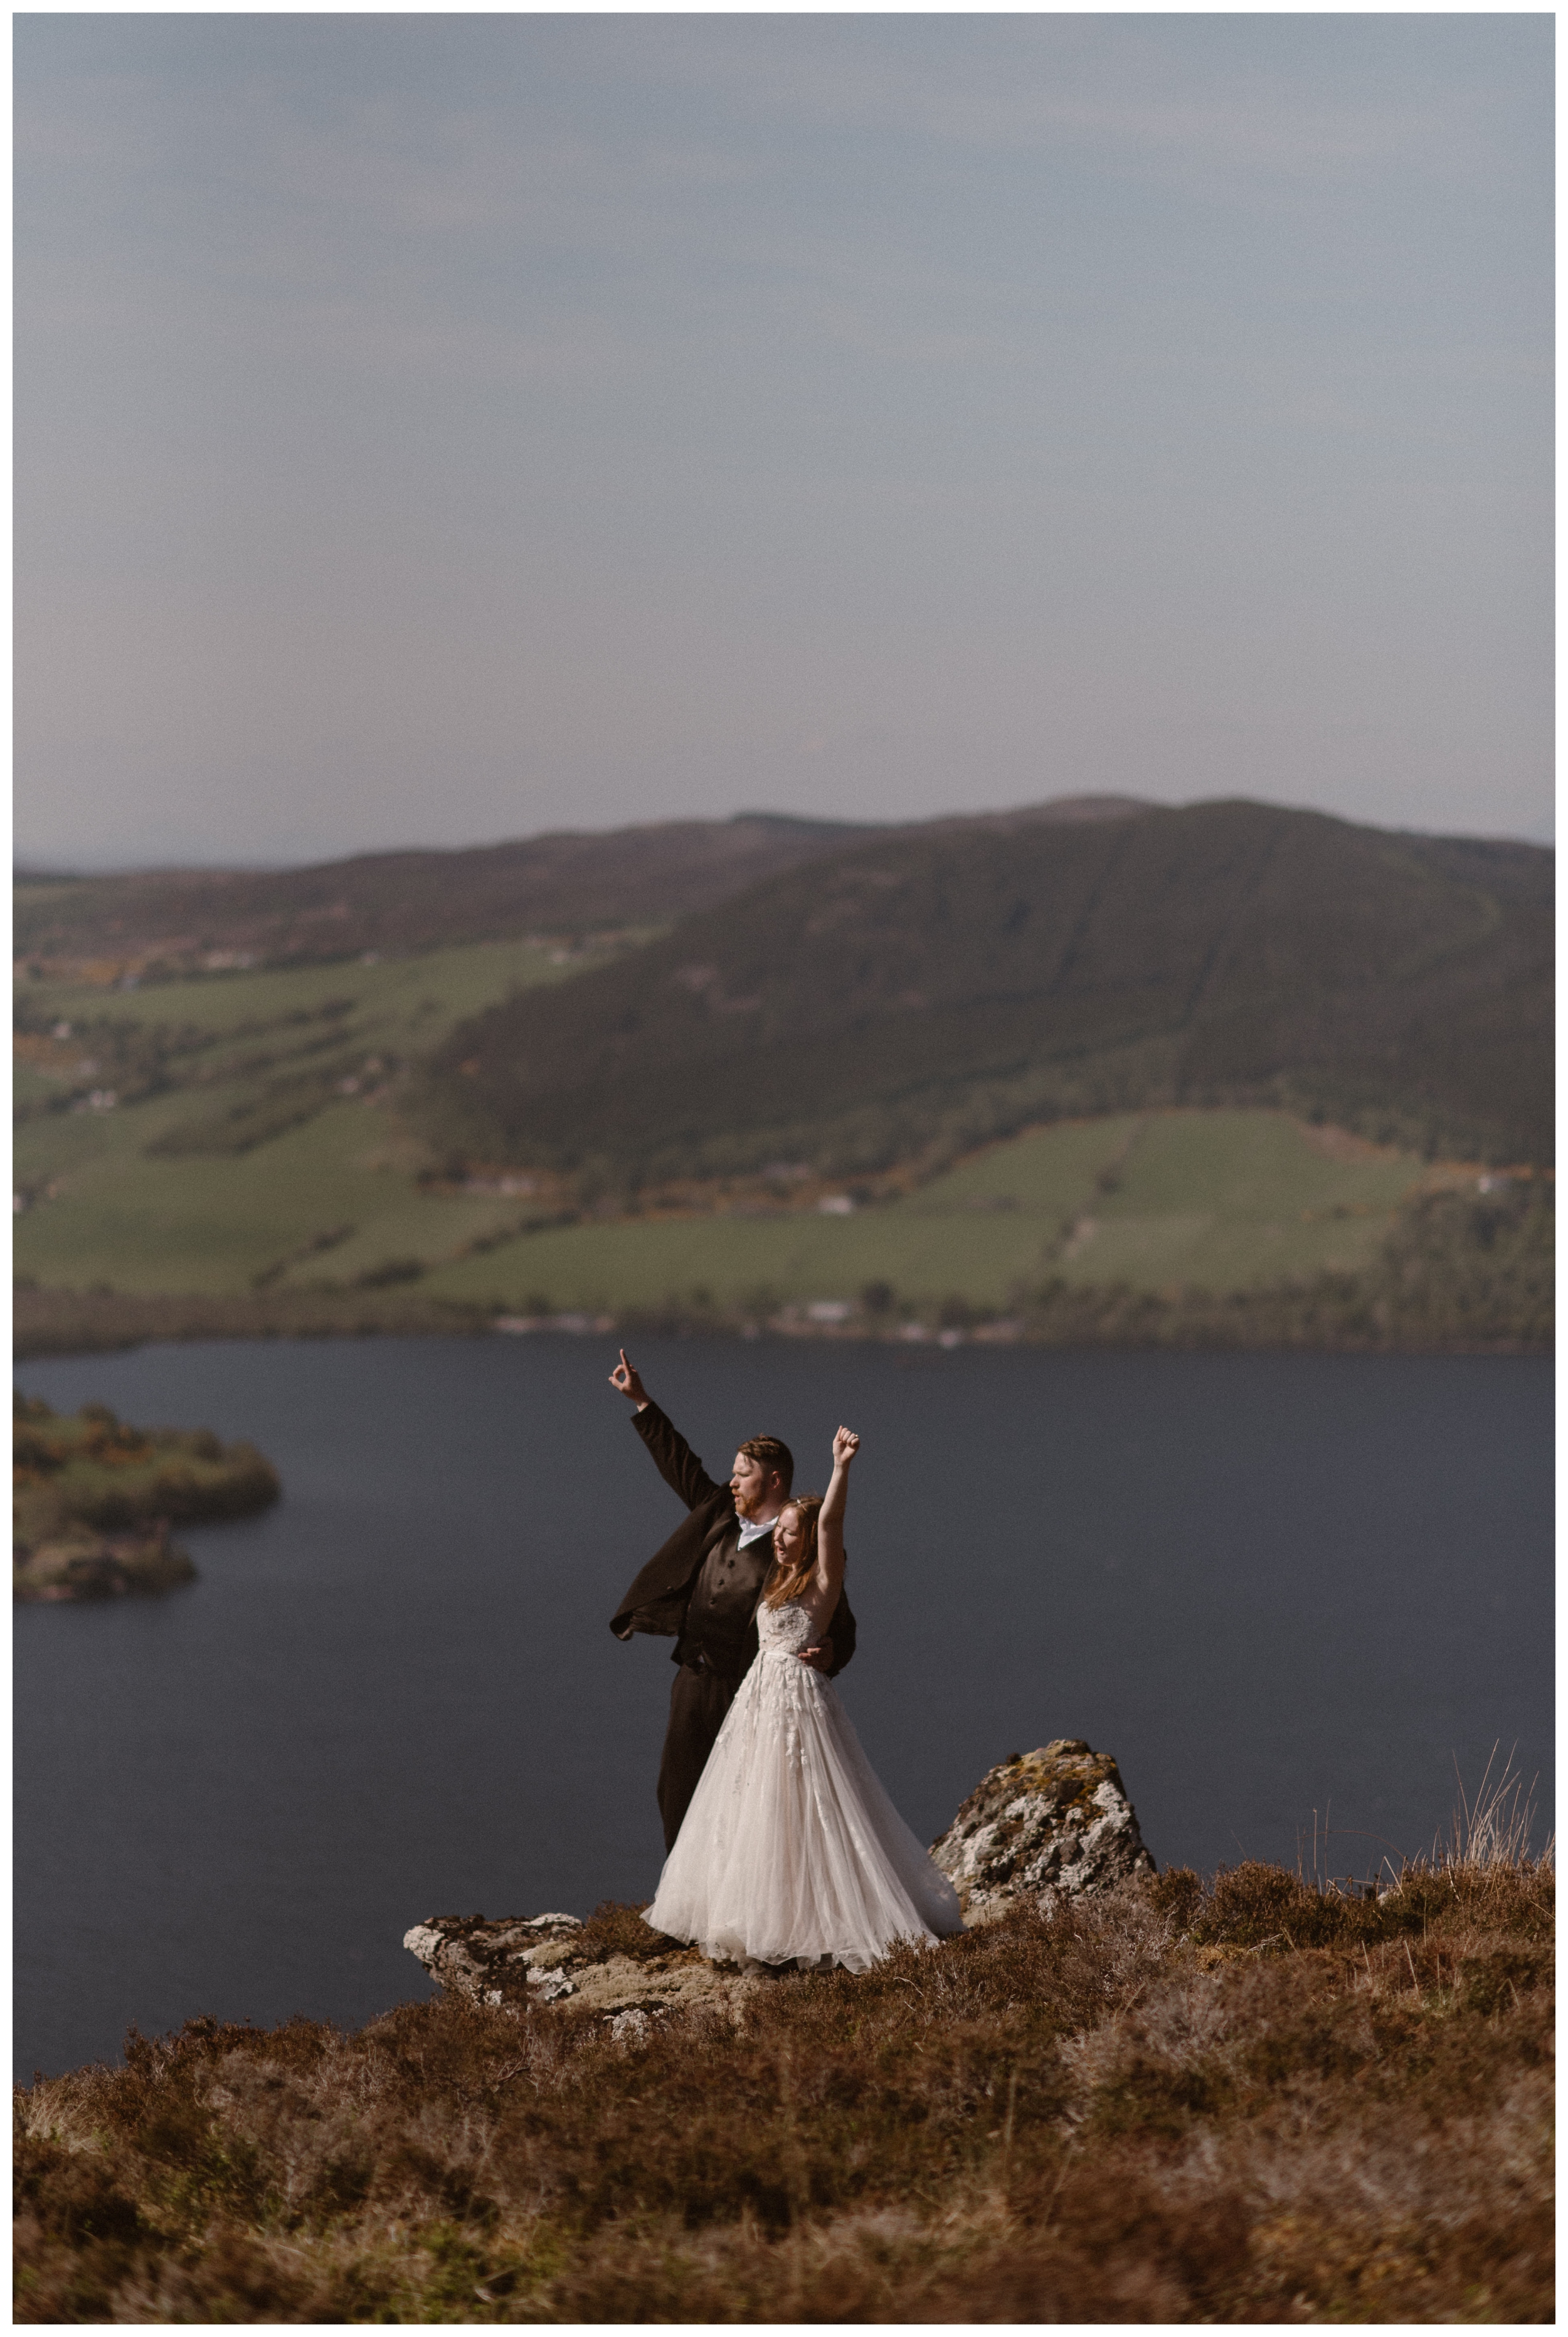 Elissa and Daniel let out a cheer on the shores of Loch Ness following their adventure destination elopement ceremony in the Scottish Highlands. The weather in Scotland was surprisingly clear for late May. Photo by Maddie Mae, Adventure Instead.